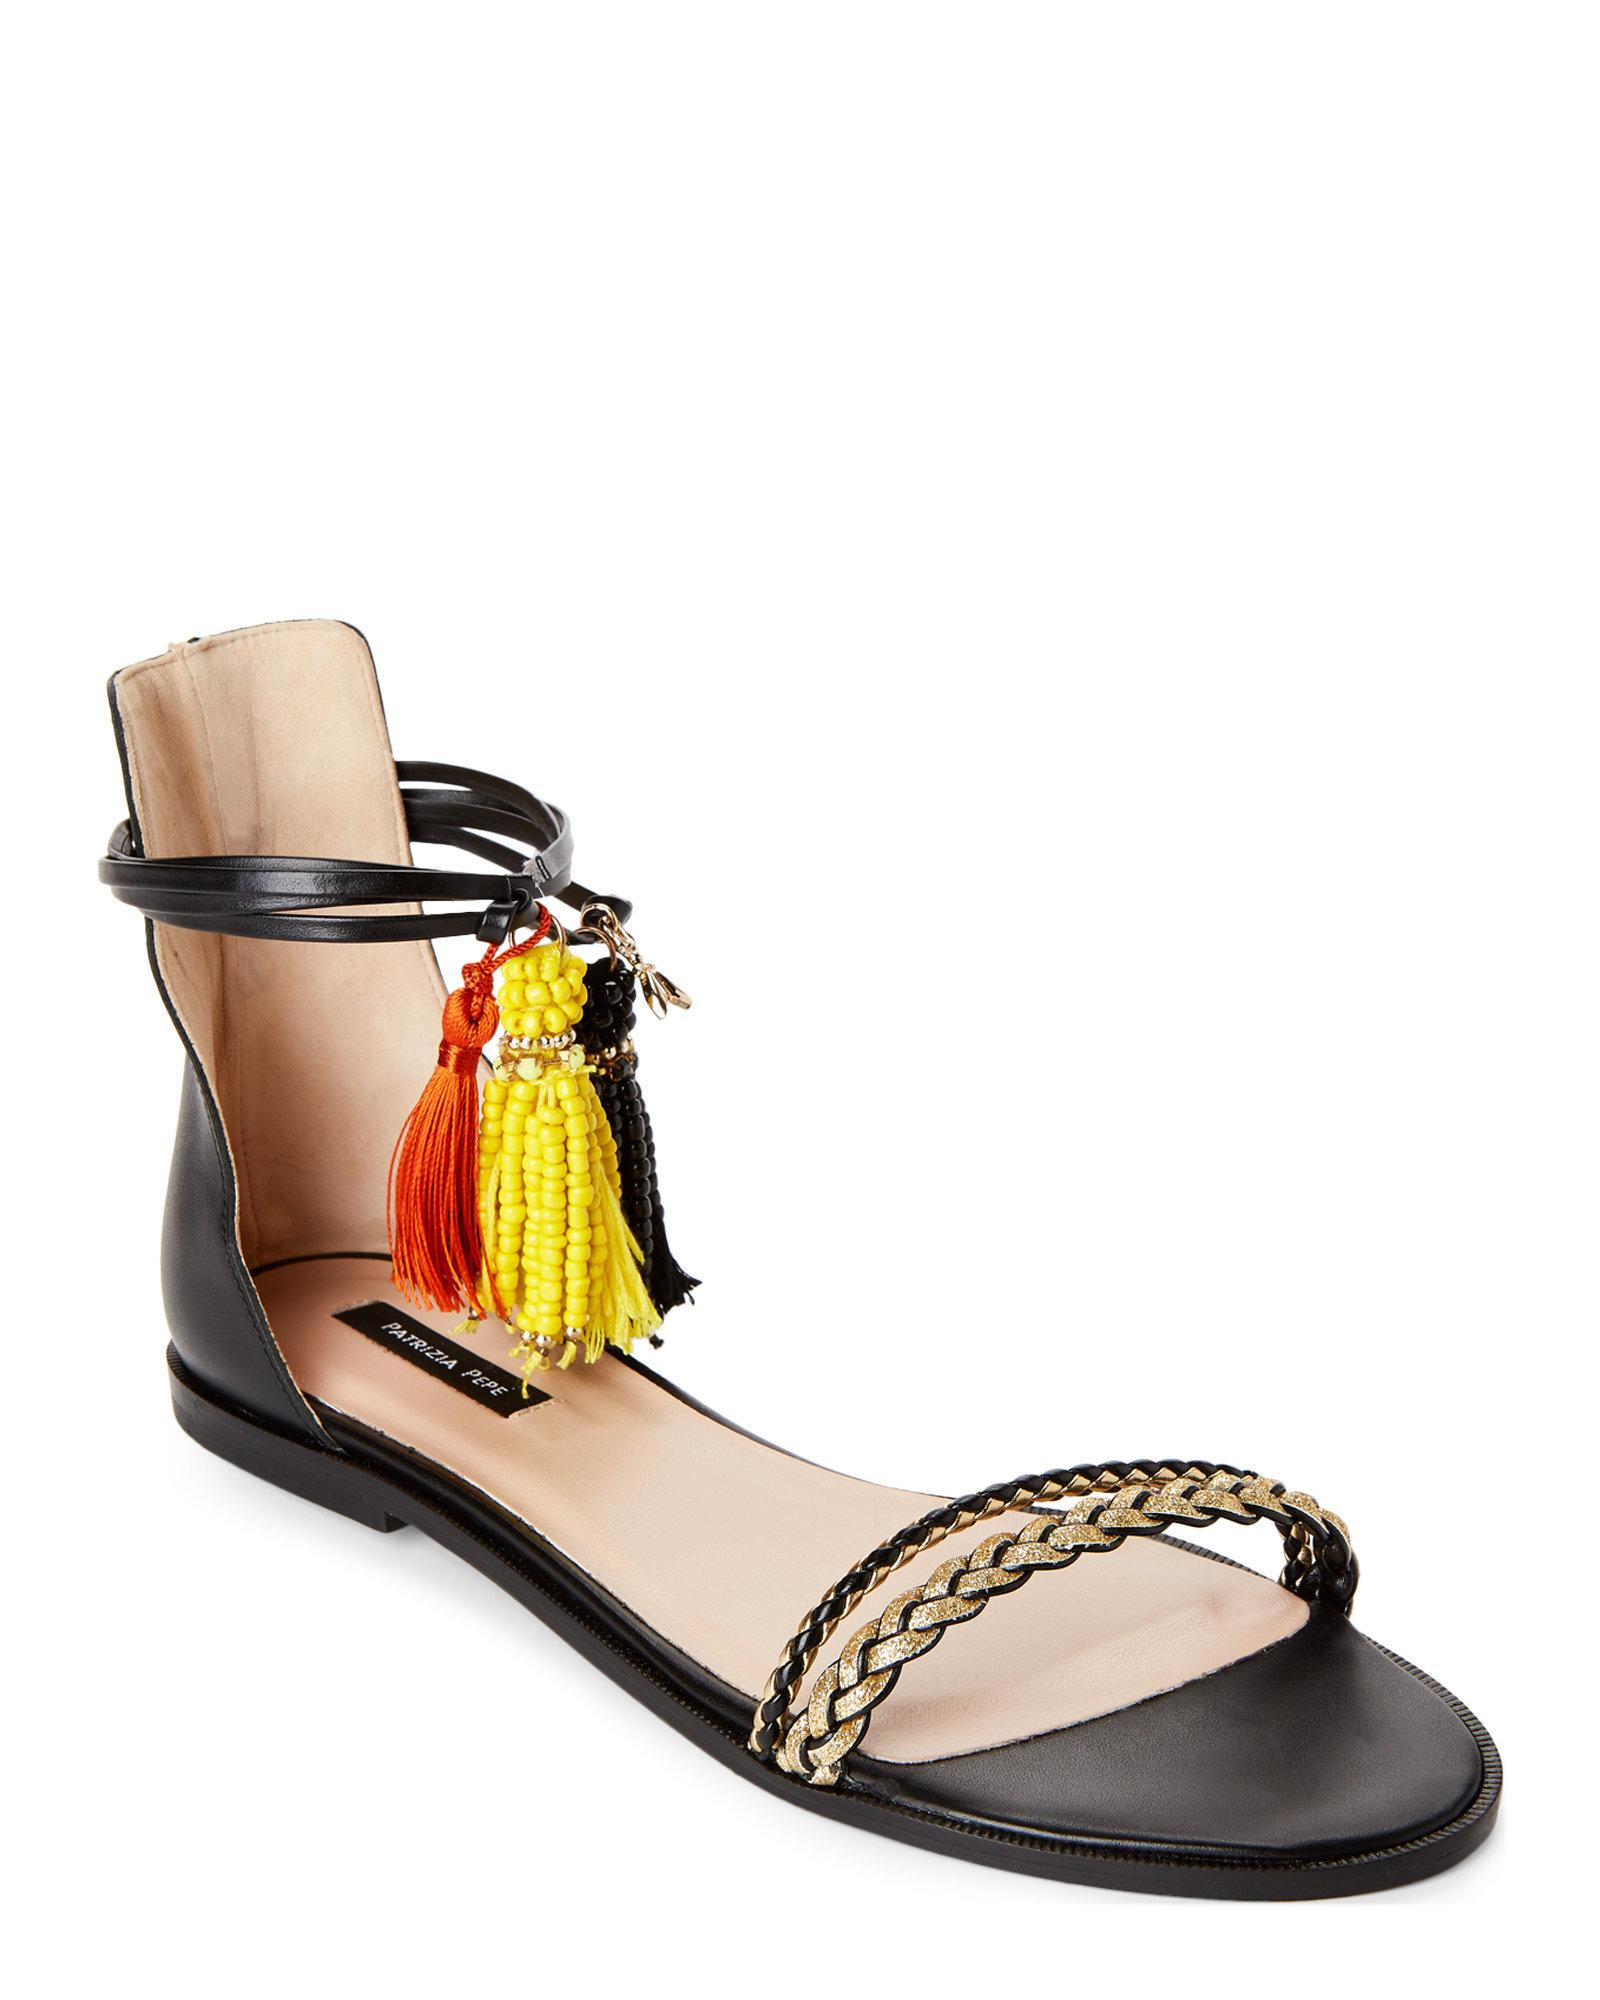 Lyst - Patrizia Pepe Black   Gold Beaded Tassel Ankle-wrap Sandals ... 1ac2e0cc9e8